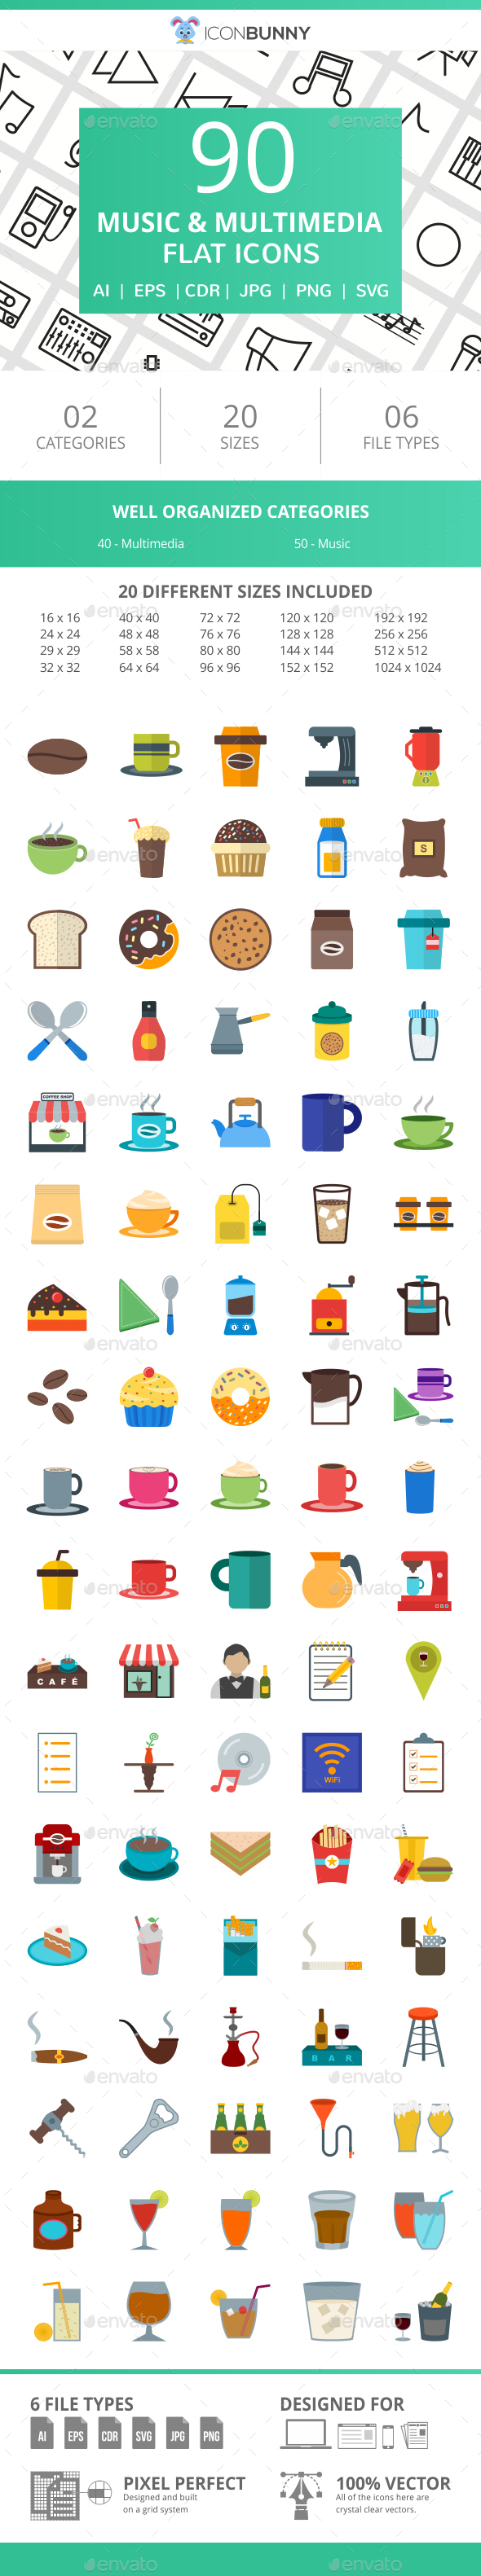 90 Coffee & Cafe Flat Icons